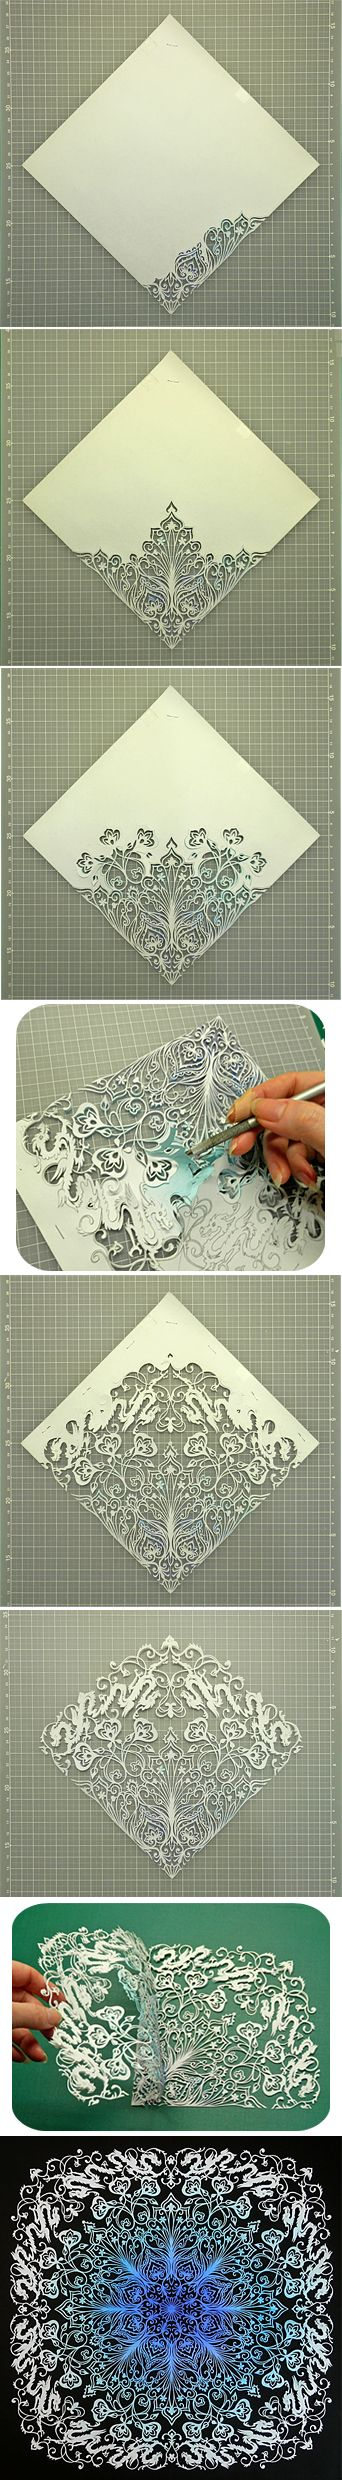 [] Japanese Kirigami Art (Cut Paper) tutorial (pictures only) by Syandery. (Link does not go to tutorial/images)